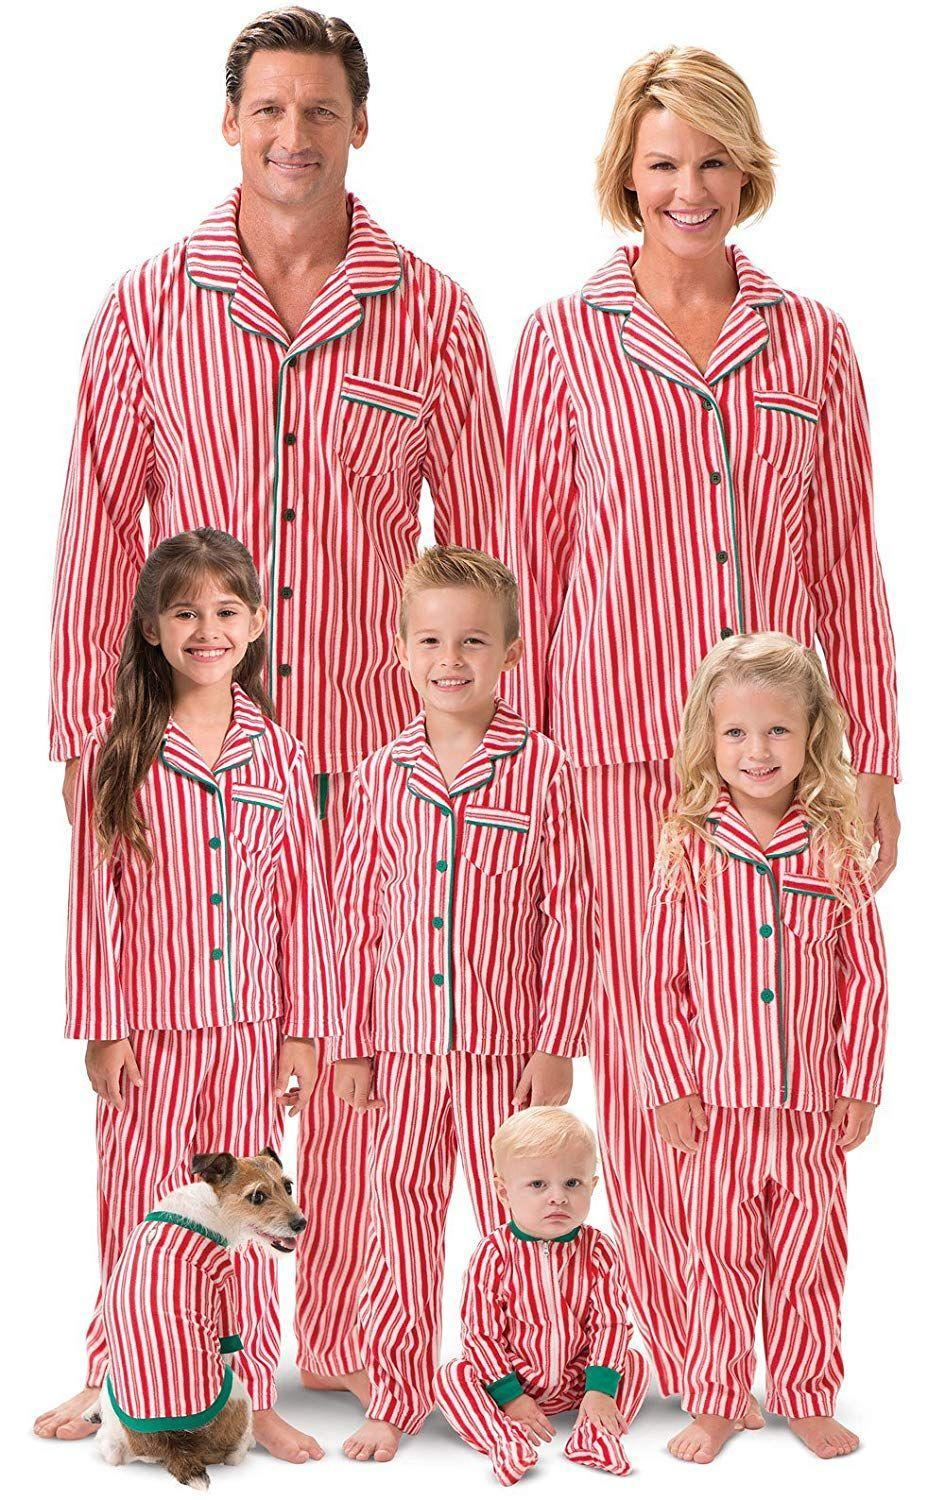 "<p><strong>PajamaGram</strong></p><p>amazon.com</p><p><strong>$59.99</strong></p><p><a href=""http://www.amazon.com/dp/B00QVOKC52/?tag=syn-yahoo-20&ascsubtag=%5Bartid%7C1782.g.34329486%5Bsrc%7Cyahoo-us"" rel=""nofollow noopener"" target=""_blank"" data-ylk=""slk:Shop Now"" class=""link rapid-noclick-resp"">Shop Now</a></p><p>These matching jammies are as sweet as candy (canes).</p>"